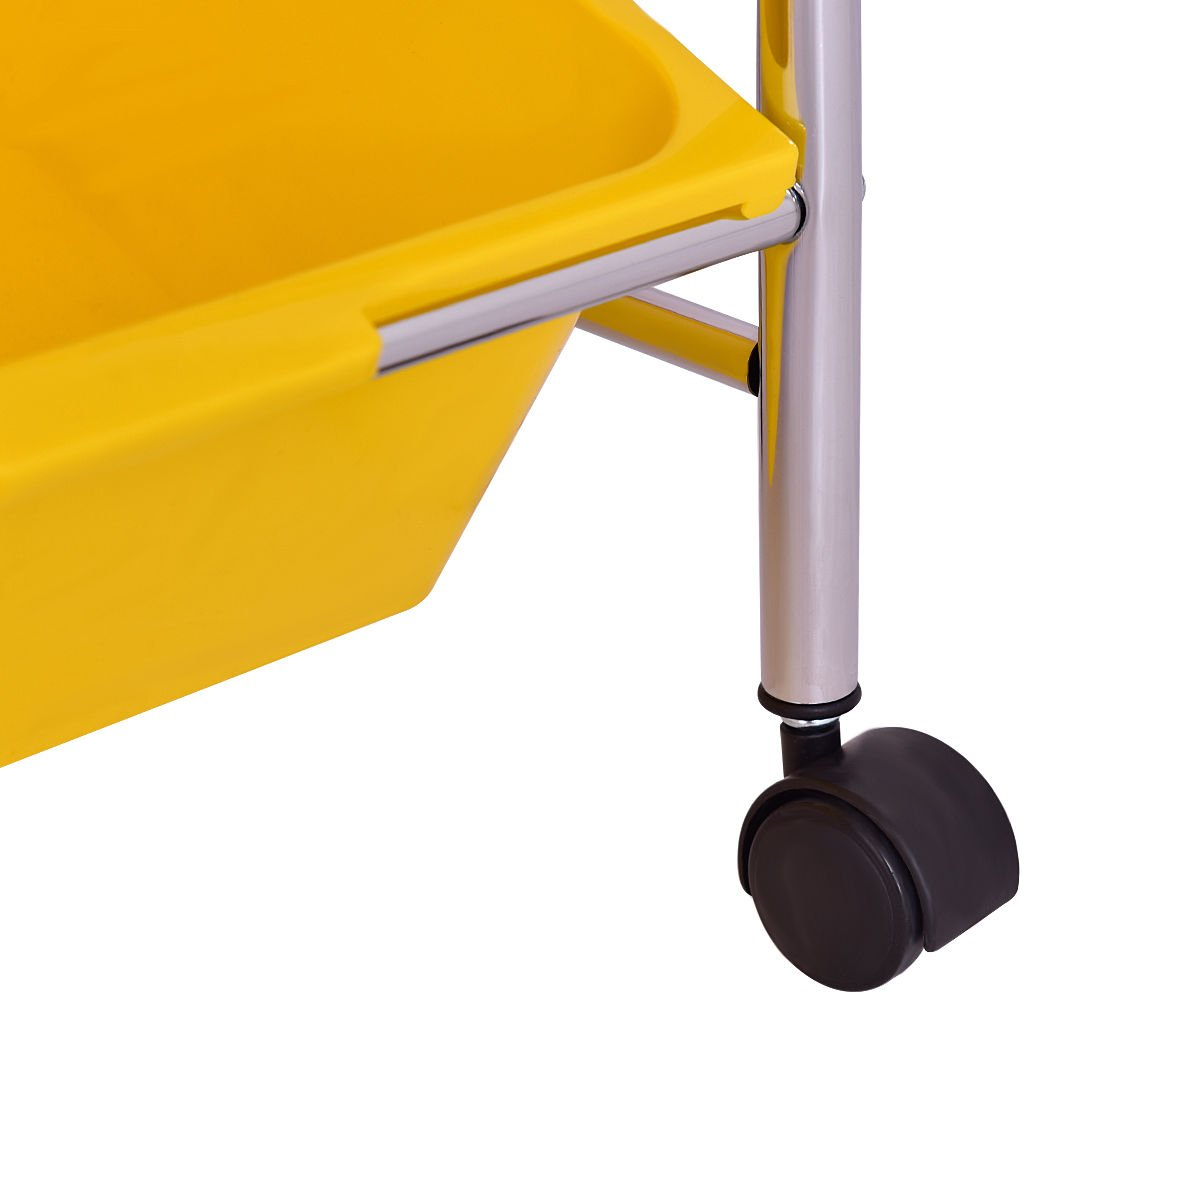 KCHEX>Toy Bin Cart Rack Organizer Kids Childrens Storage Box Playroom Bedroom Shelf>This is Our 9 Plastic Drawer Rolling cart, which is of and Brand New. Thanks to its Colorful Plastic by KCHEX (Image #7)